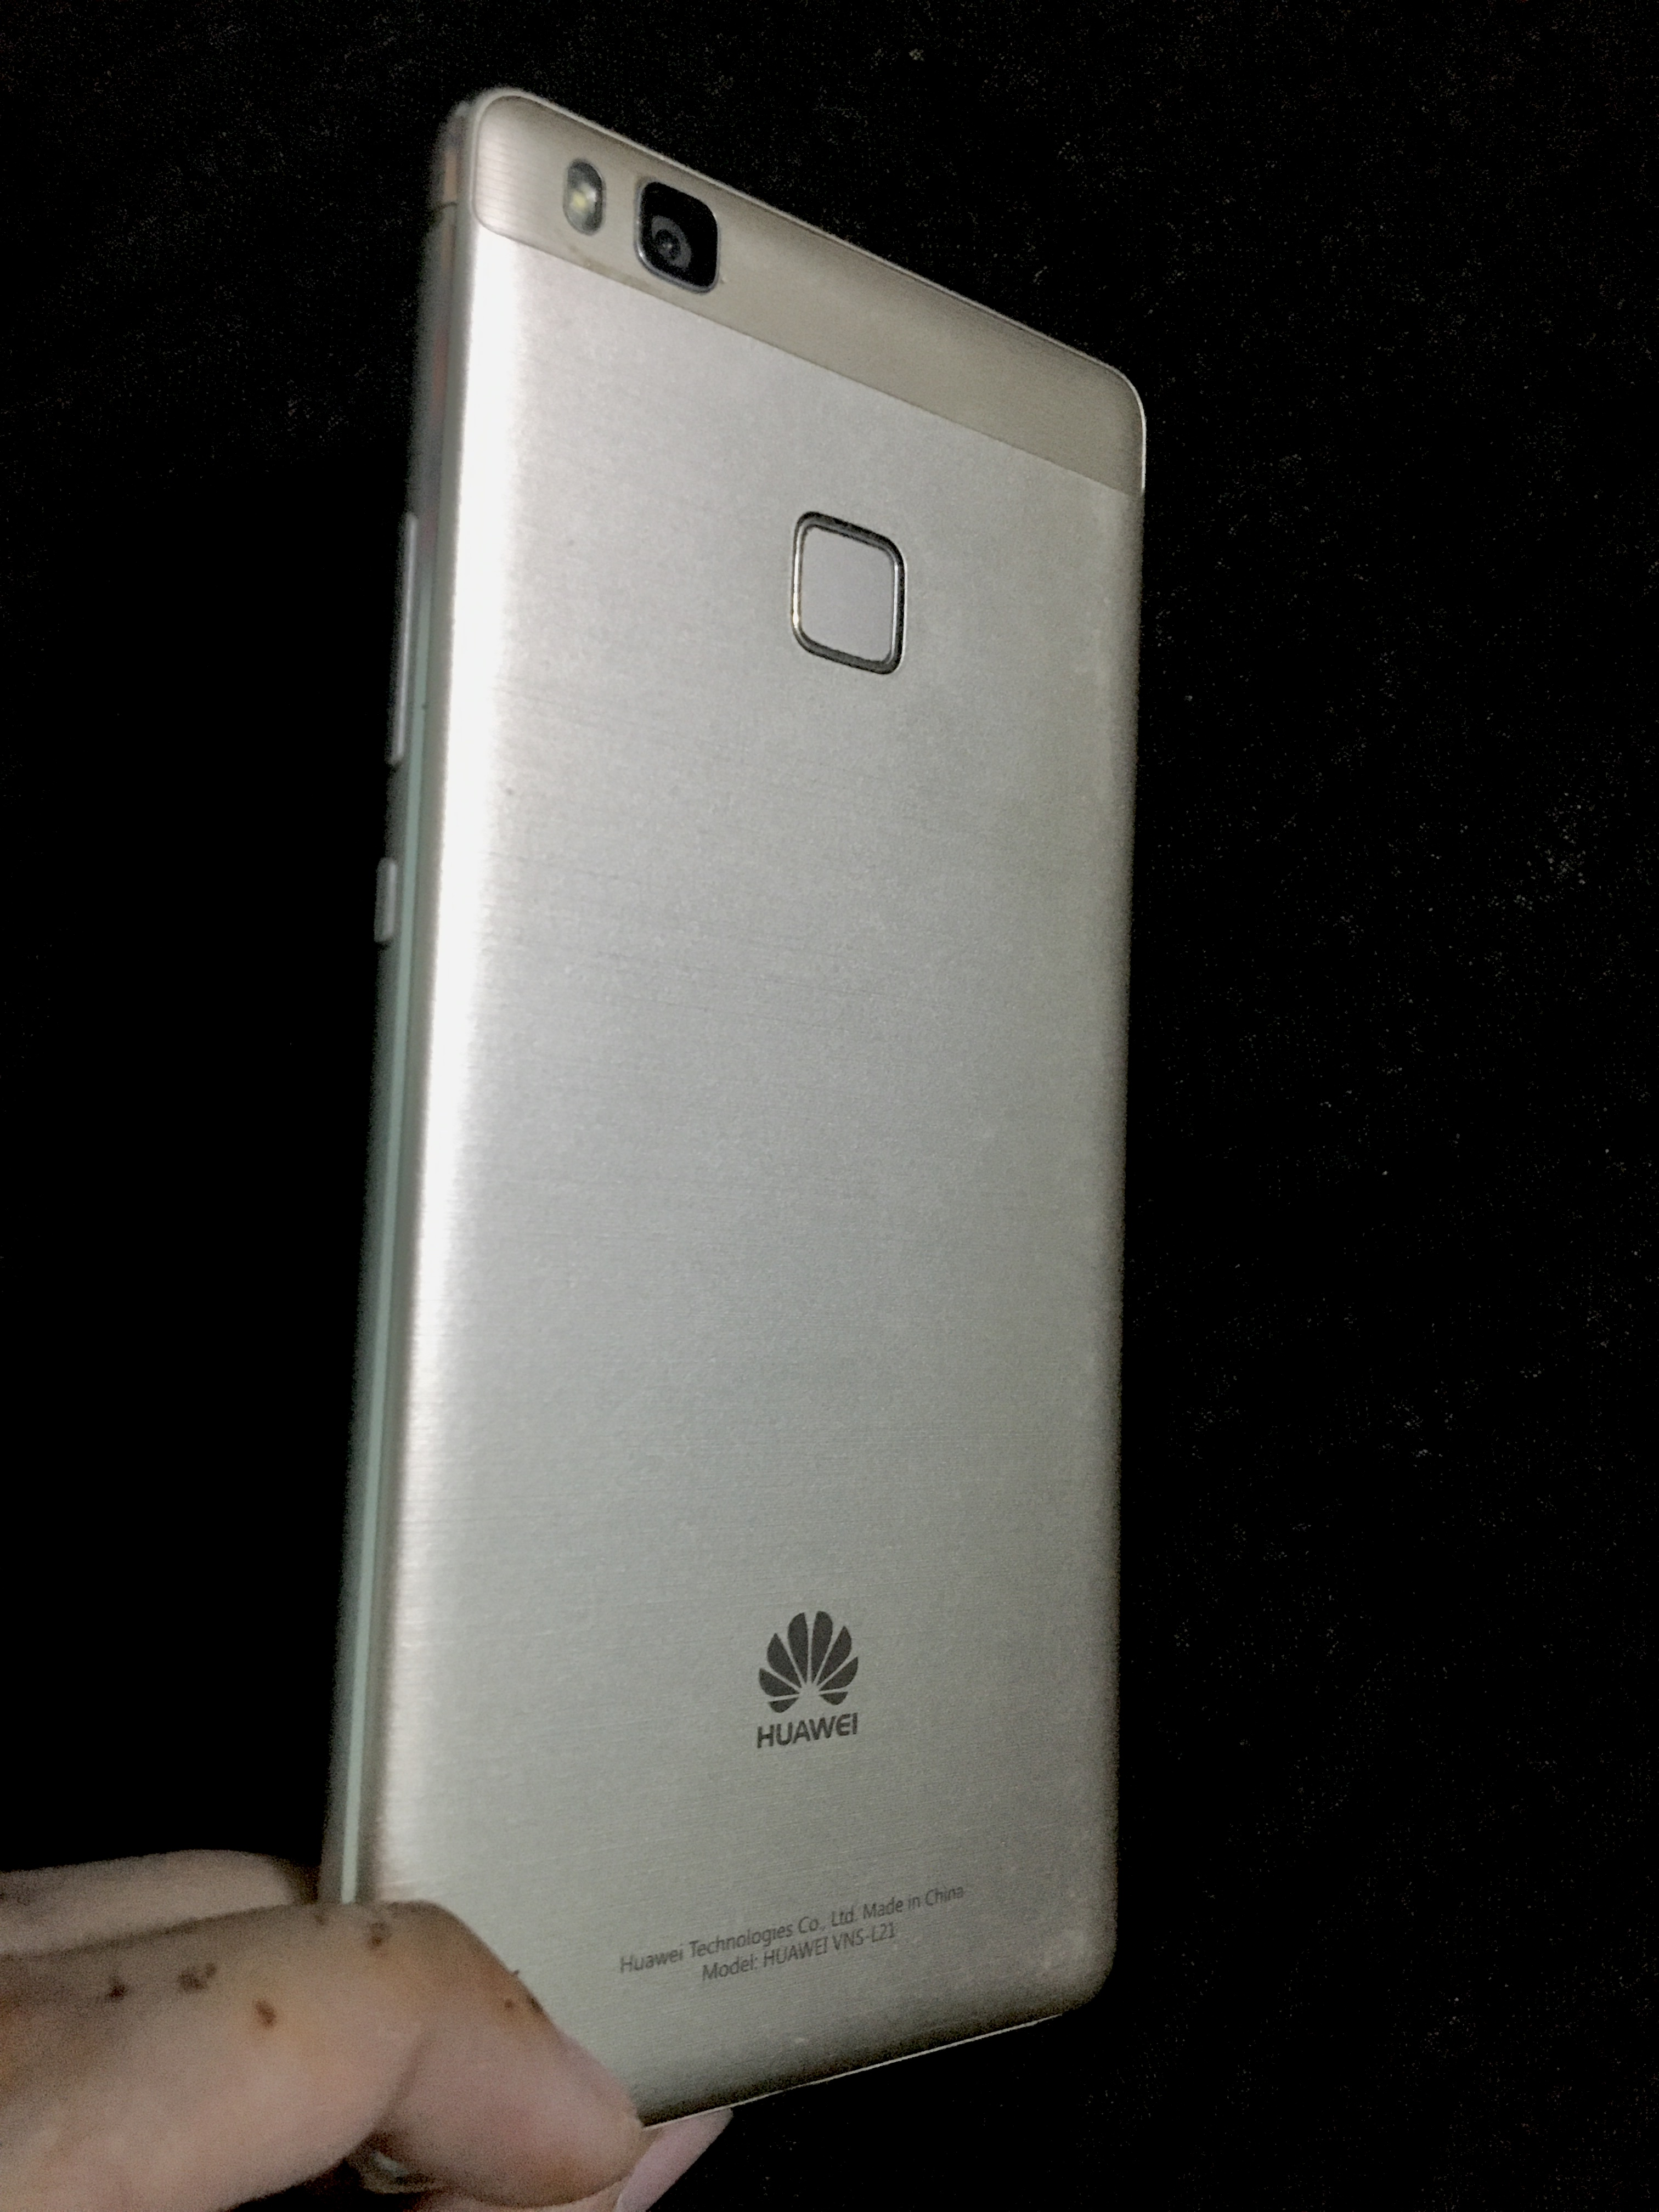 Huawei p9 lite - photo 2